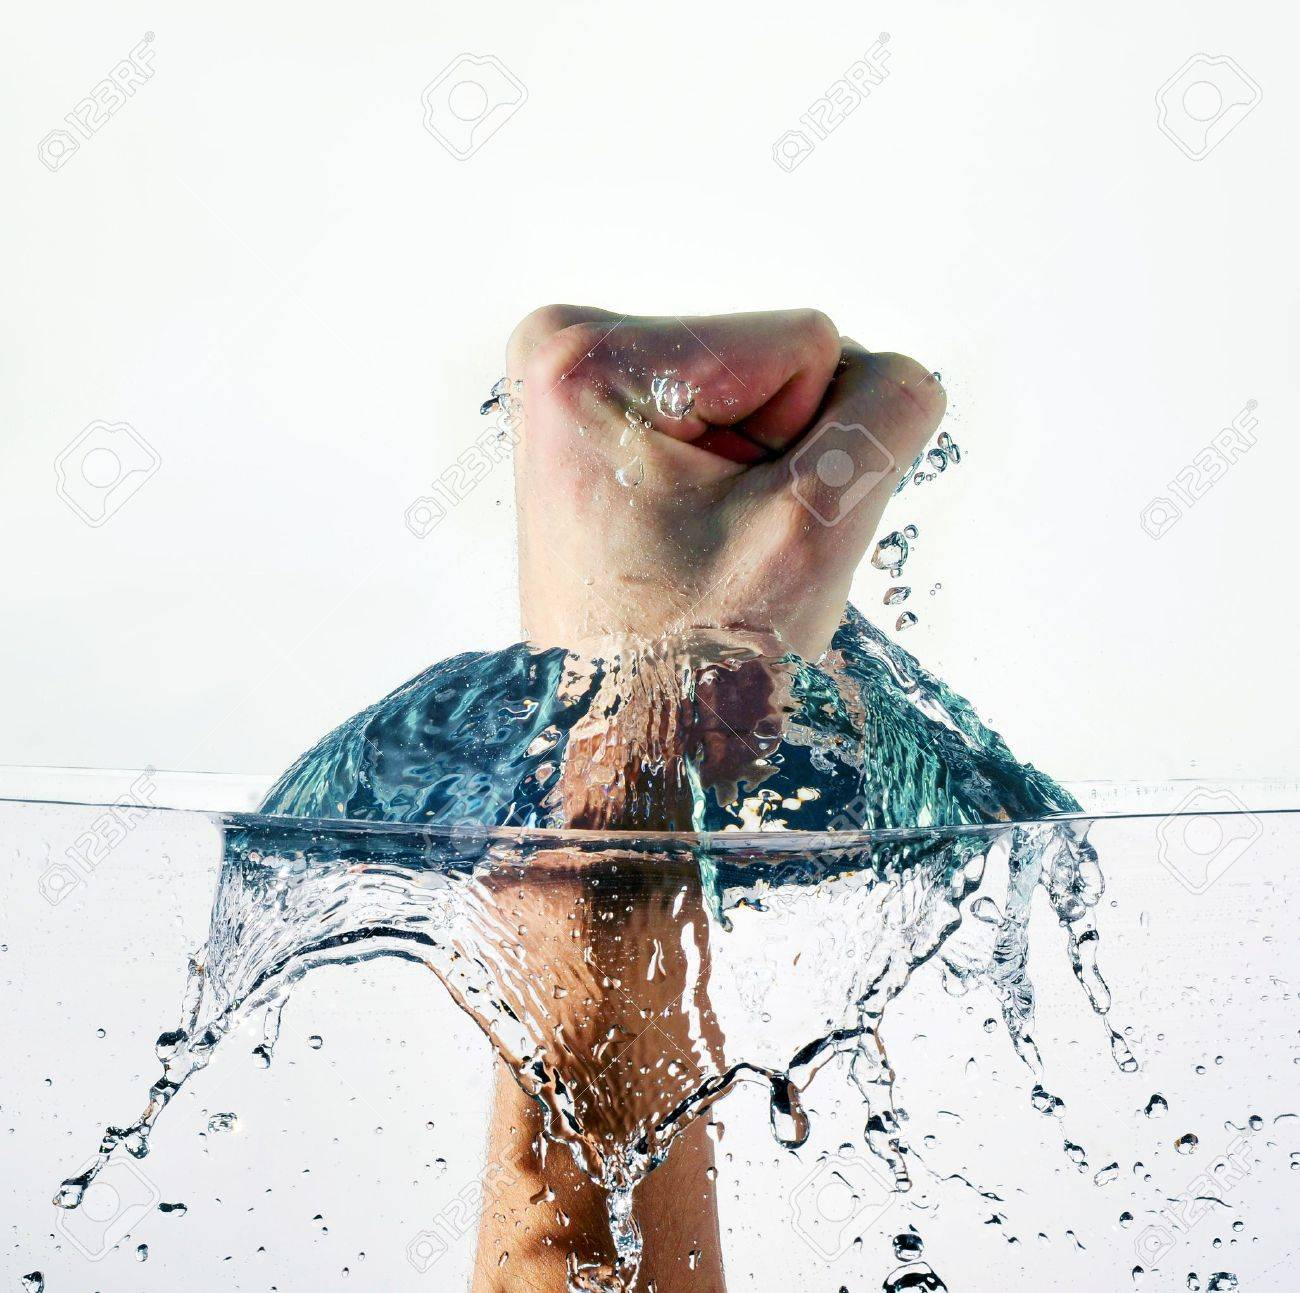 An angry fist punching water isolated on white background Stock Photo - 11838008